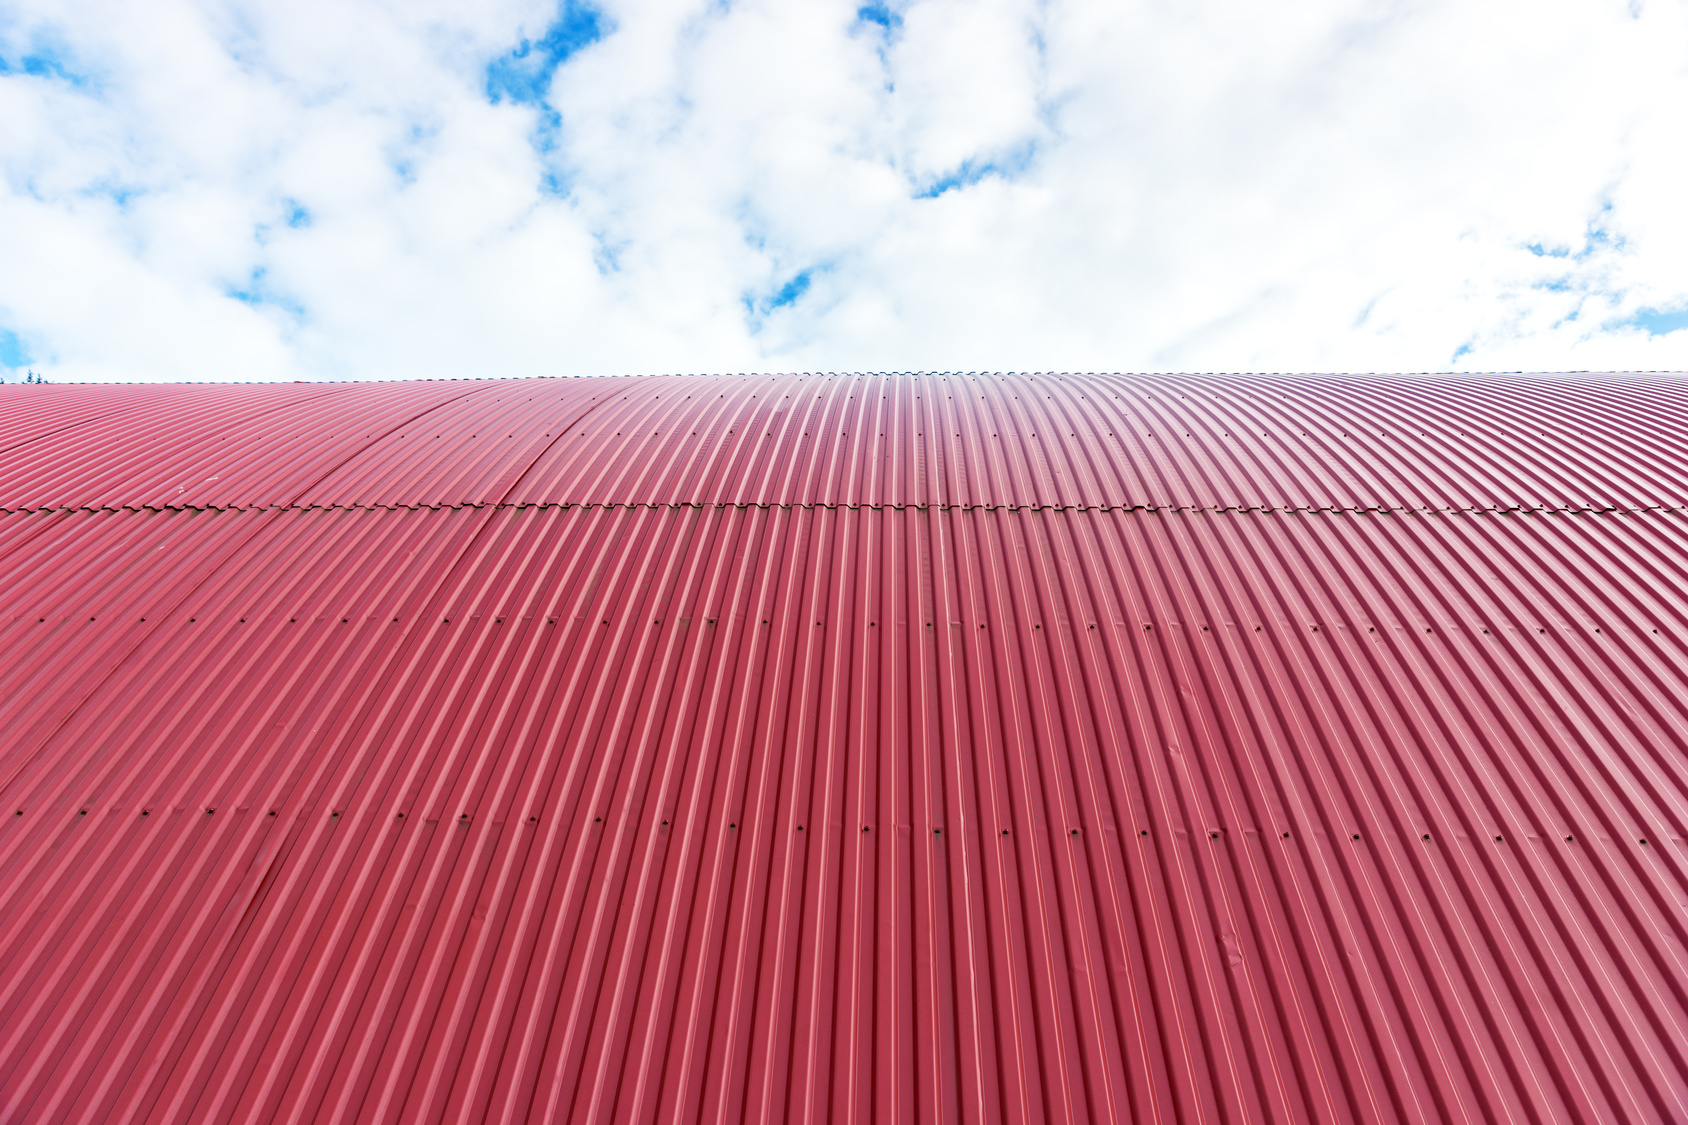 3 Differences Between Corrugated Metal Roofing And Standing Seam Metal Roofing News And Events For Global Home Improvement